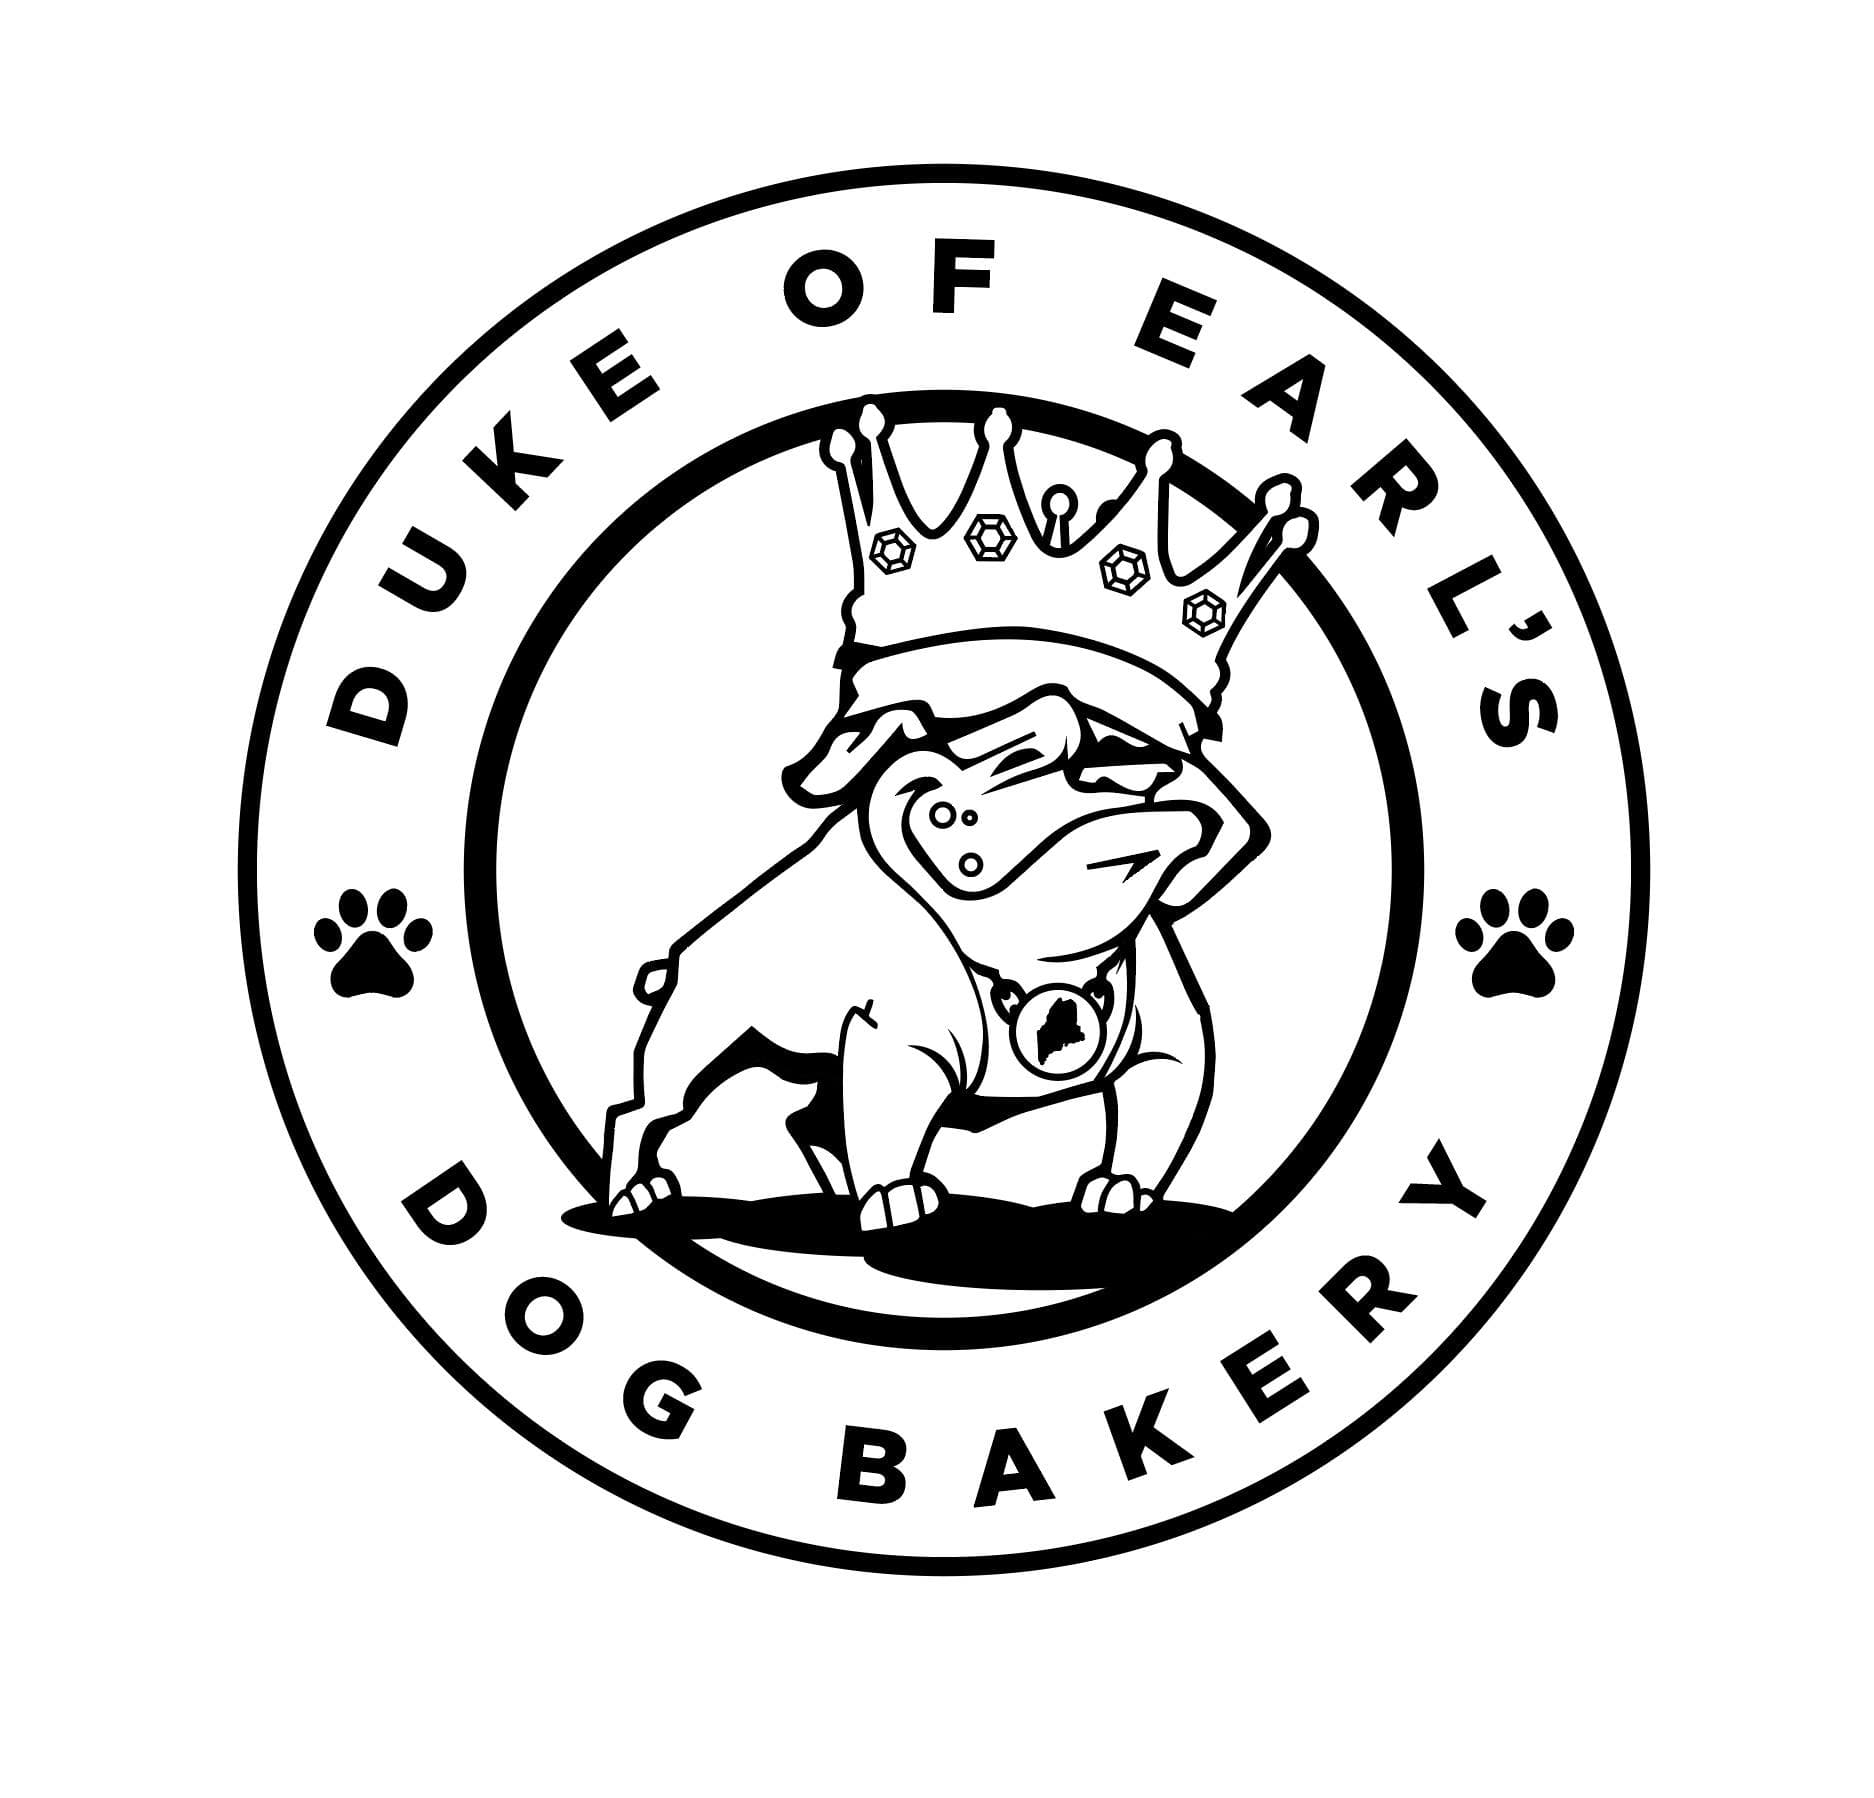 Duke of Earl's Dog Bakery